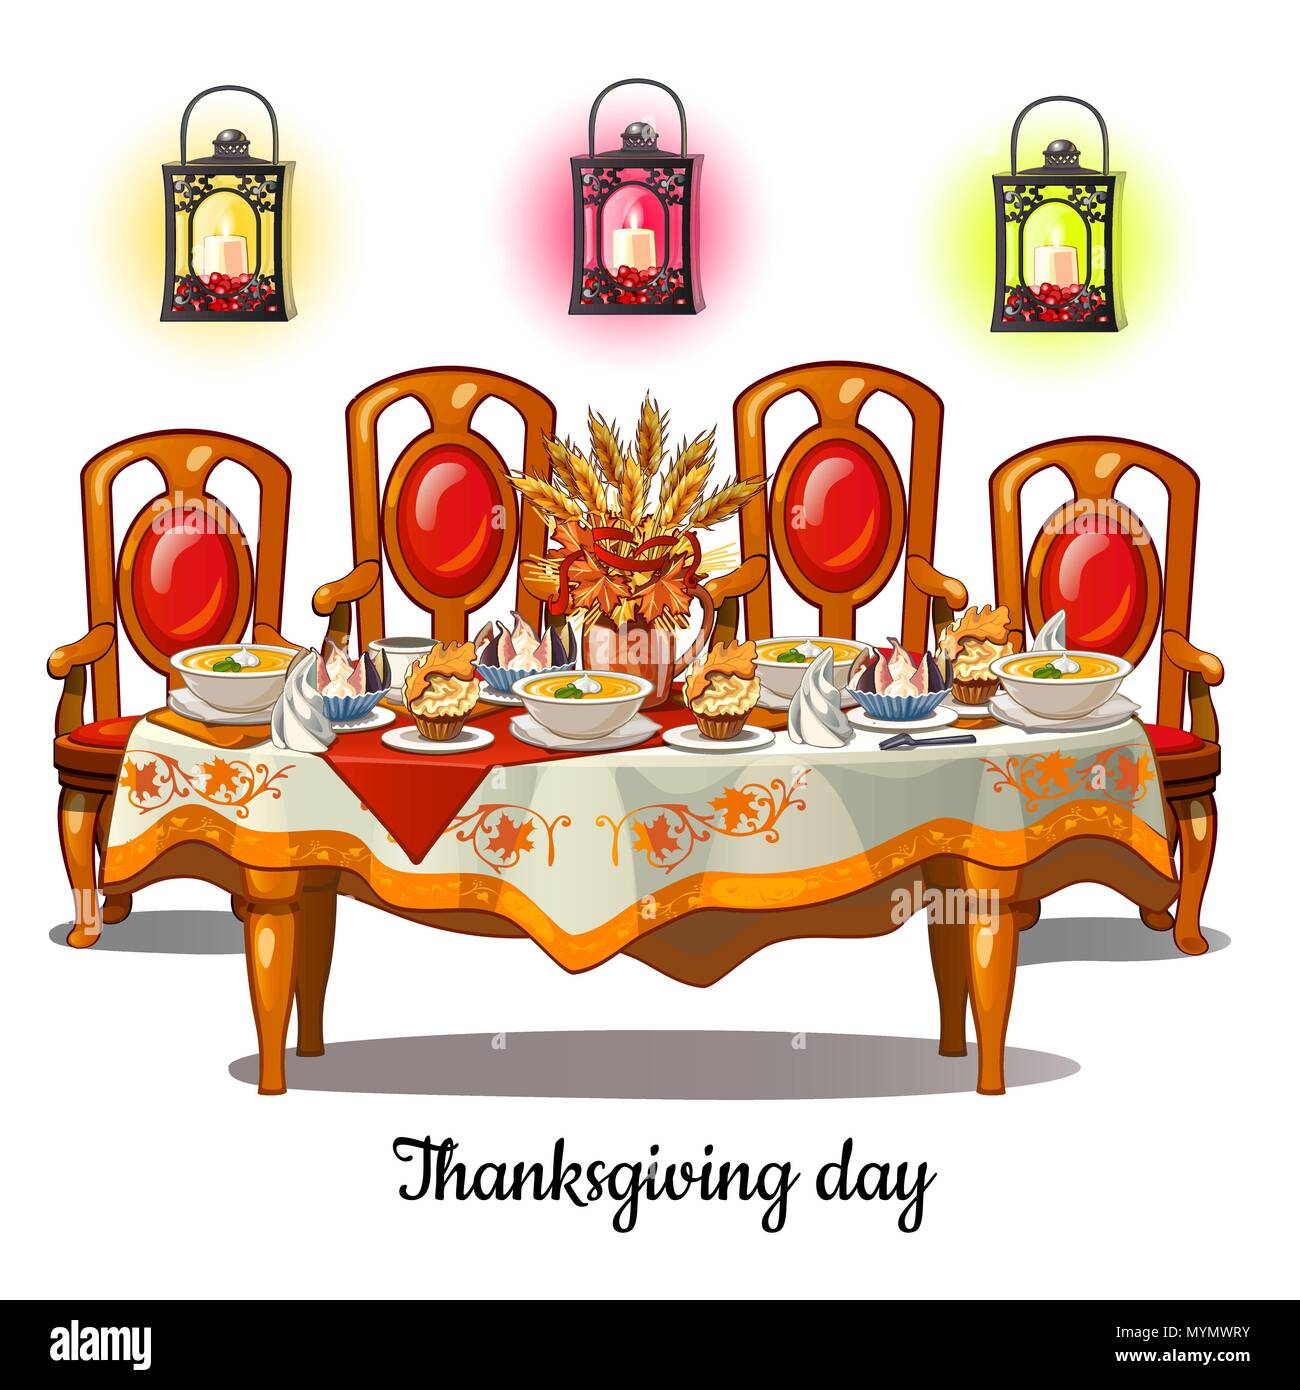 Festive Table With Food On Thanksgiving Day. Vintage